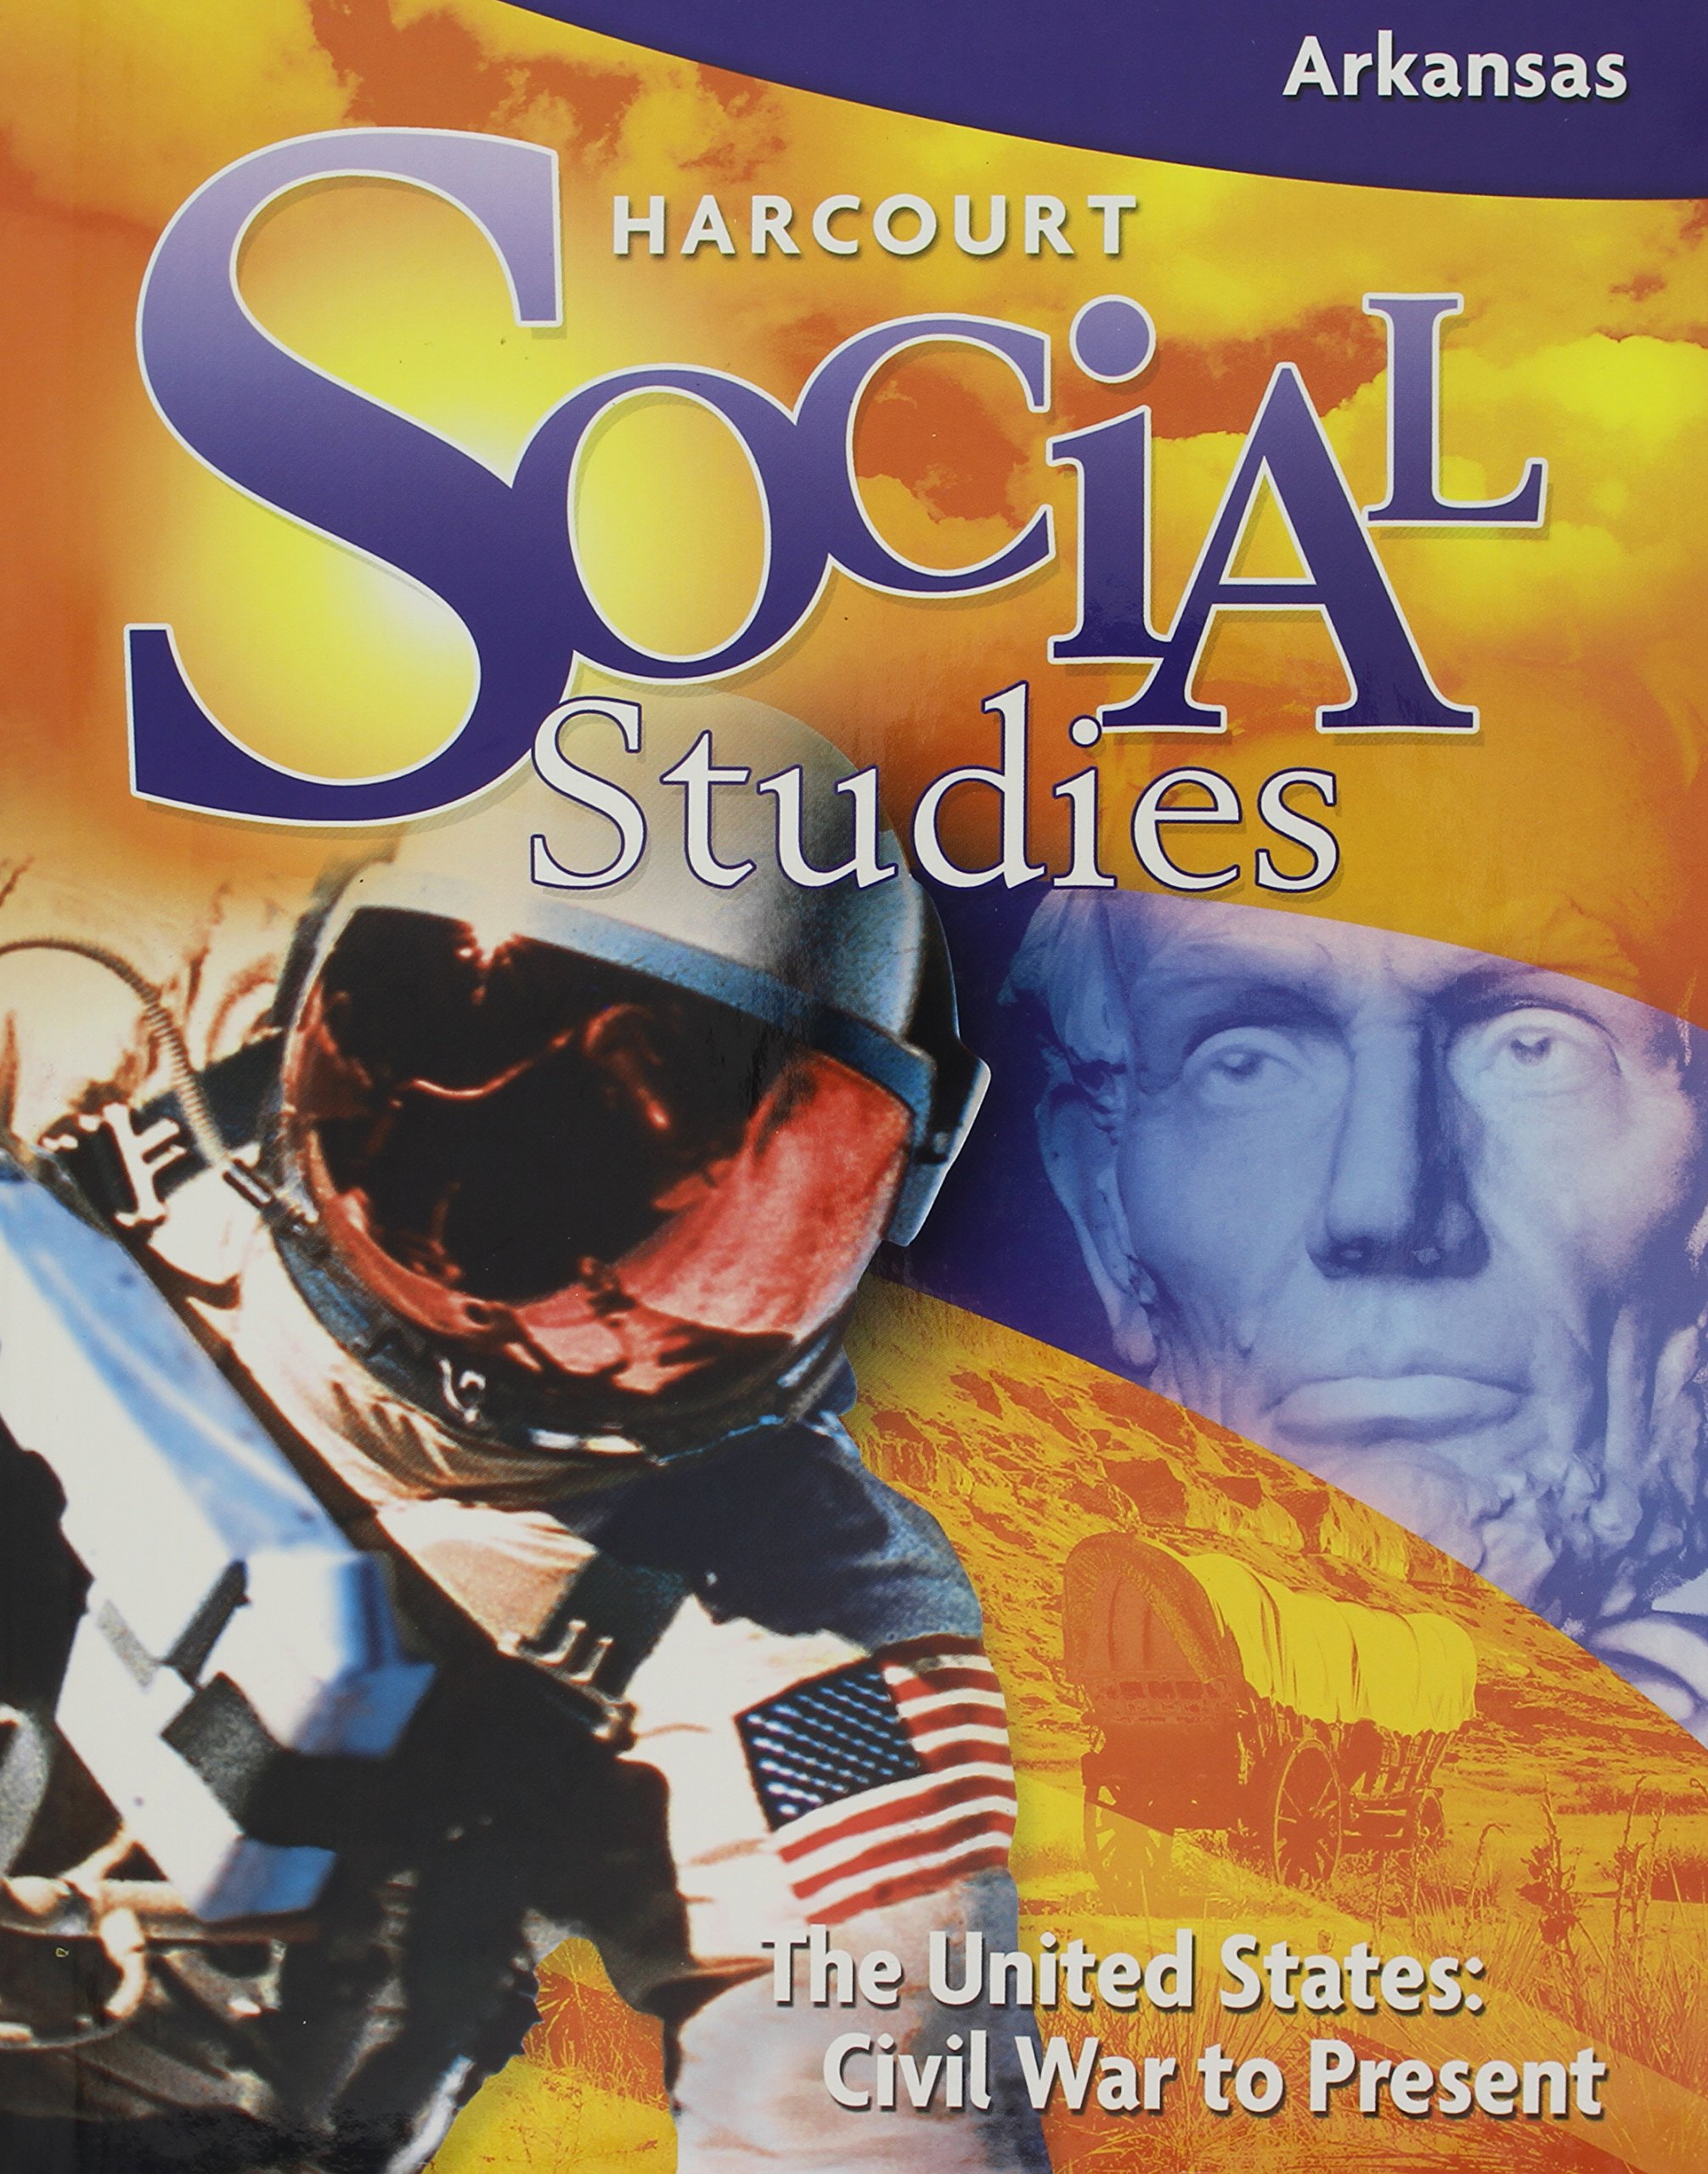 Harcourt social studies the united states civil war to present harcourt social studies the united states civil war to present harcourt school 9780153686917 amazon books fandeluxe Images